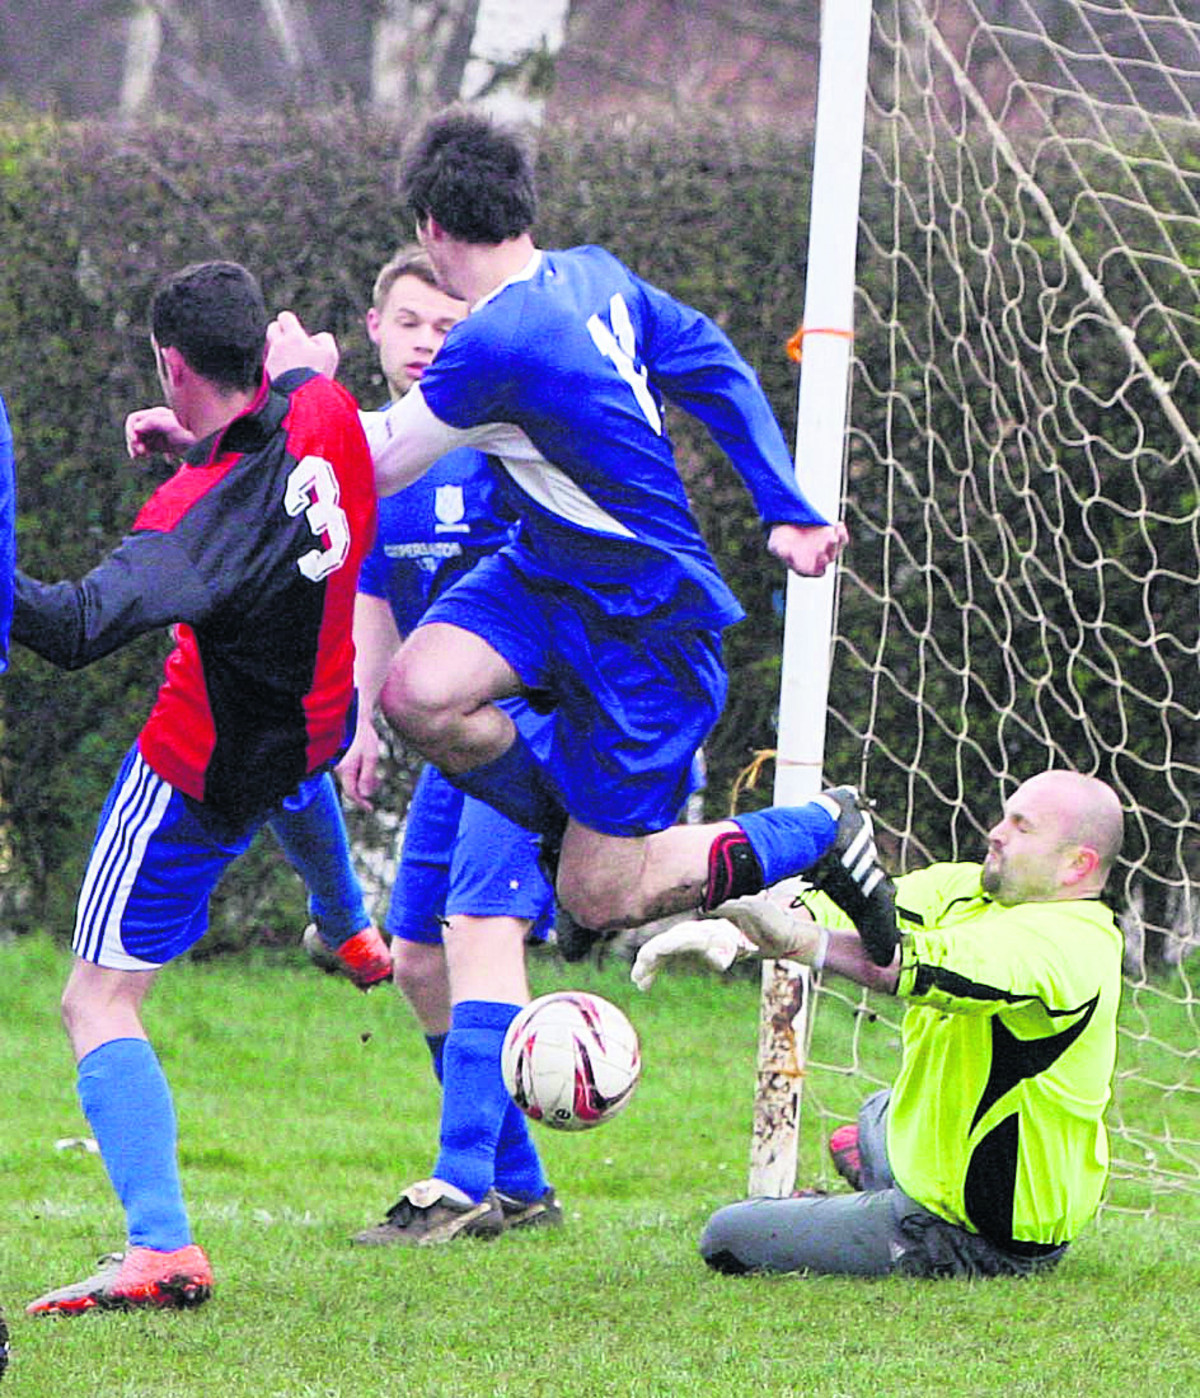 Woodstock Wanderers' keeper James Franklin makes a brave save in their 4-3 defeat at Northway Res in Division 2 on Sunday